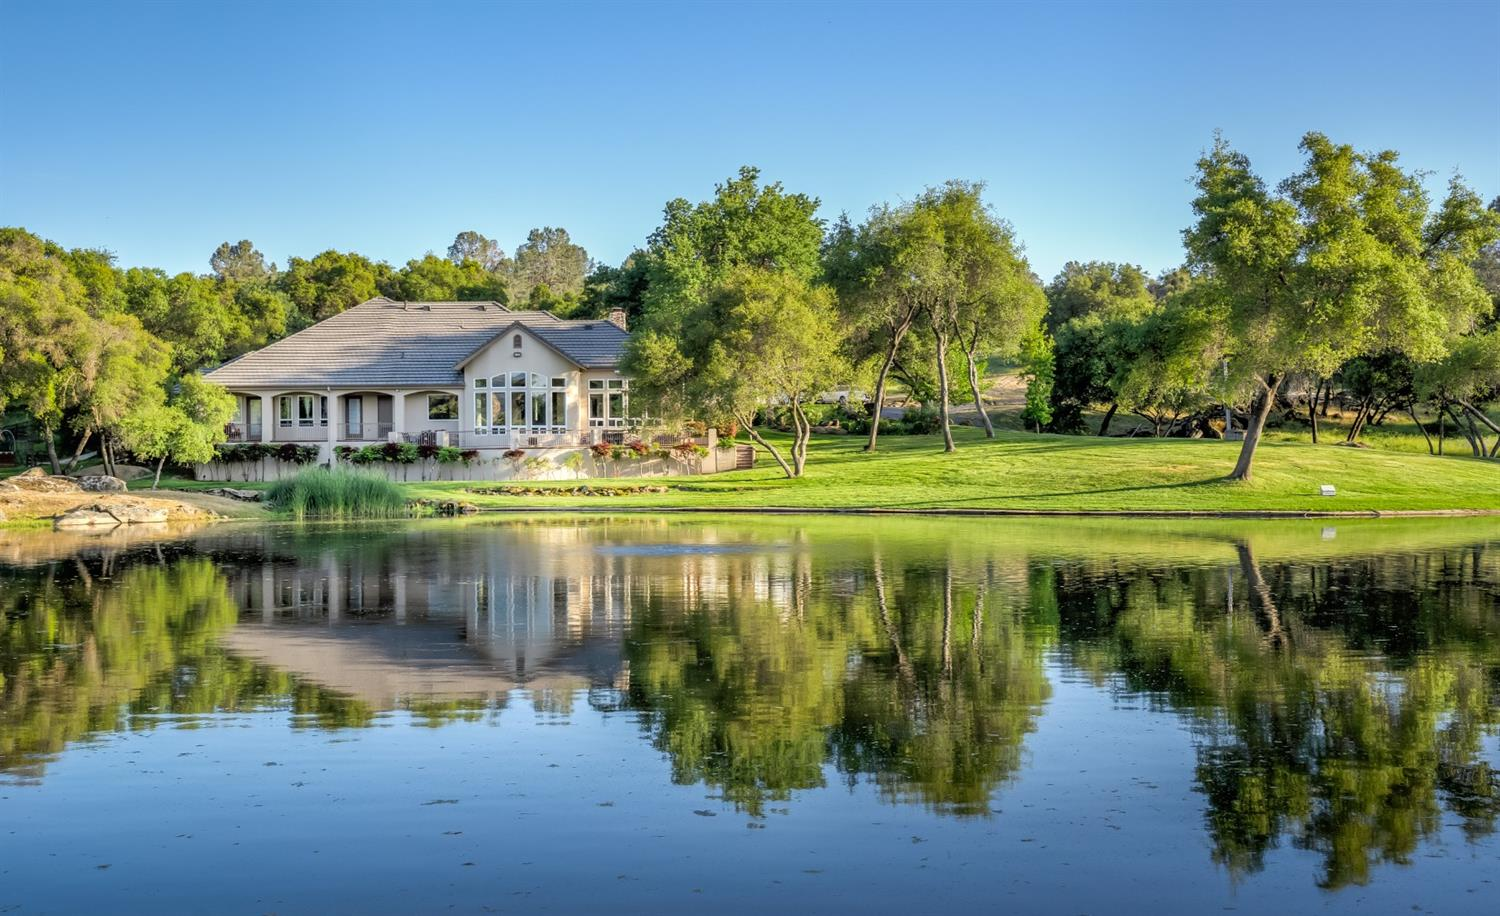 This stunning residential provincial estate is nestled in a harmonious rural setting spanning approximately 120 acres on two contiguous parcels. Embraced by a region known for premium terroir, renowned vineyards, and Meditteranean climate, this property endows a unique agriculture opportunity and development potential. Diamond Springs Ranch is suitable for various agriculture pursuits: Agri-tourism operations, Gentleman's Ranch, equestrian operations, commercial grape and/or olive production, vacation rental and wedding venue opportunities. There are two wells with abundant water for existing ranch uses or potential for a new vineyard in the highly acclaimed Madera Wine Trail. This spectacular estate grants a sophisticated turn-key opportunity with an upscale home that features a neutral palate, Terrazzo flooring, cathedral ceilings, and attractive design elements. The kitchen, including a walk-in pantry and wine cellar, offers an open floor plan for casual yet elegant entertaining.